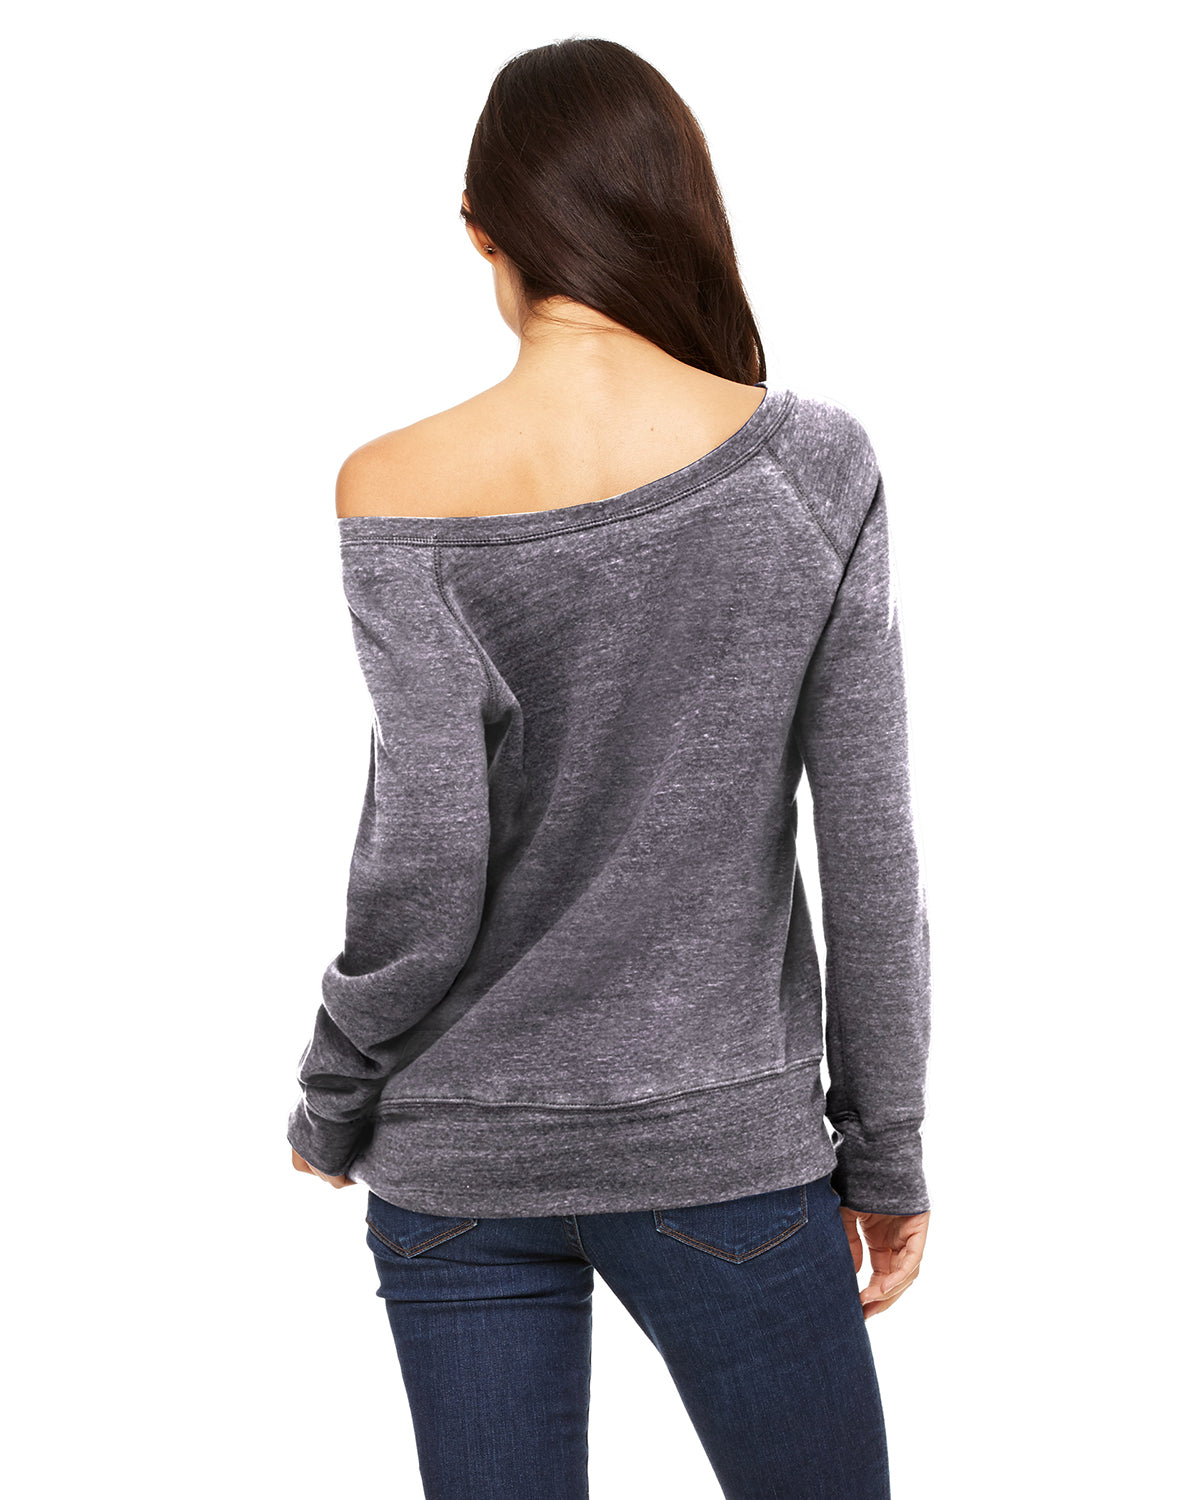 Bye Off Shoulder Sweatshirt